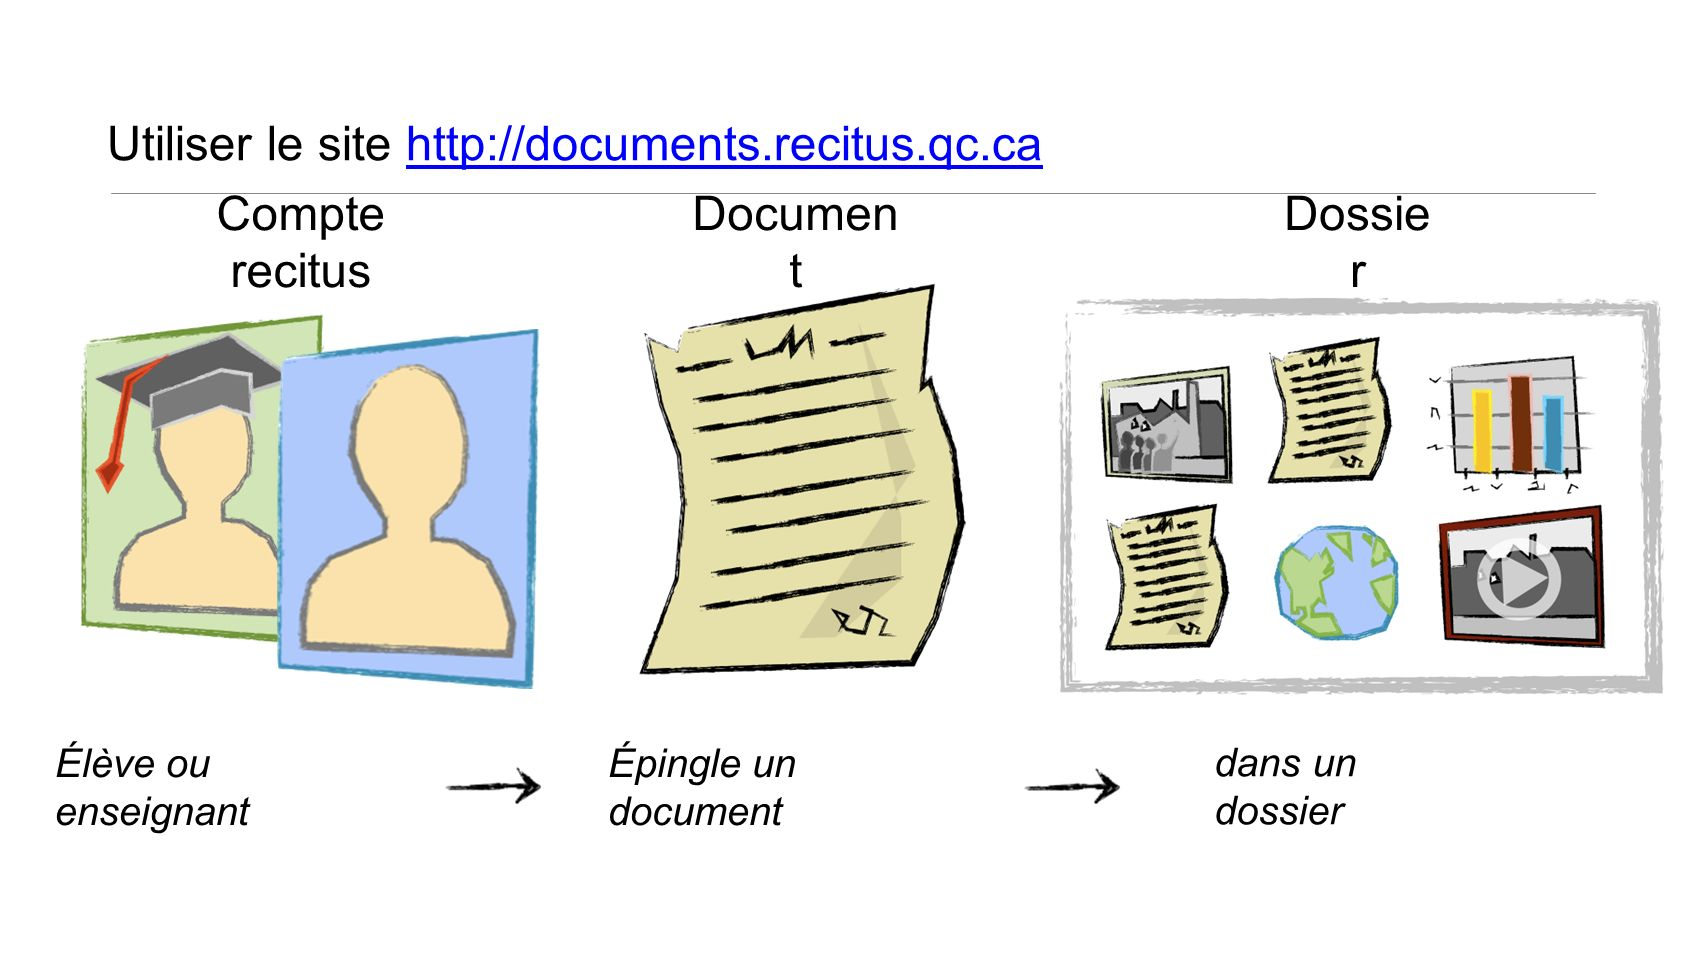 Utiliser le site http://documents.recitus.qc.ca